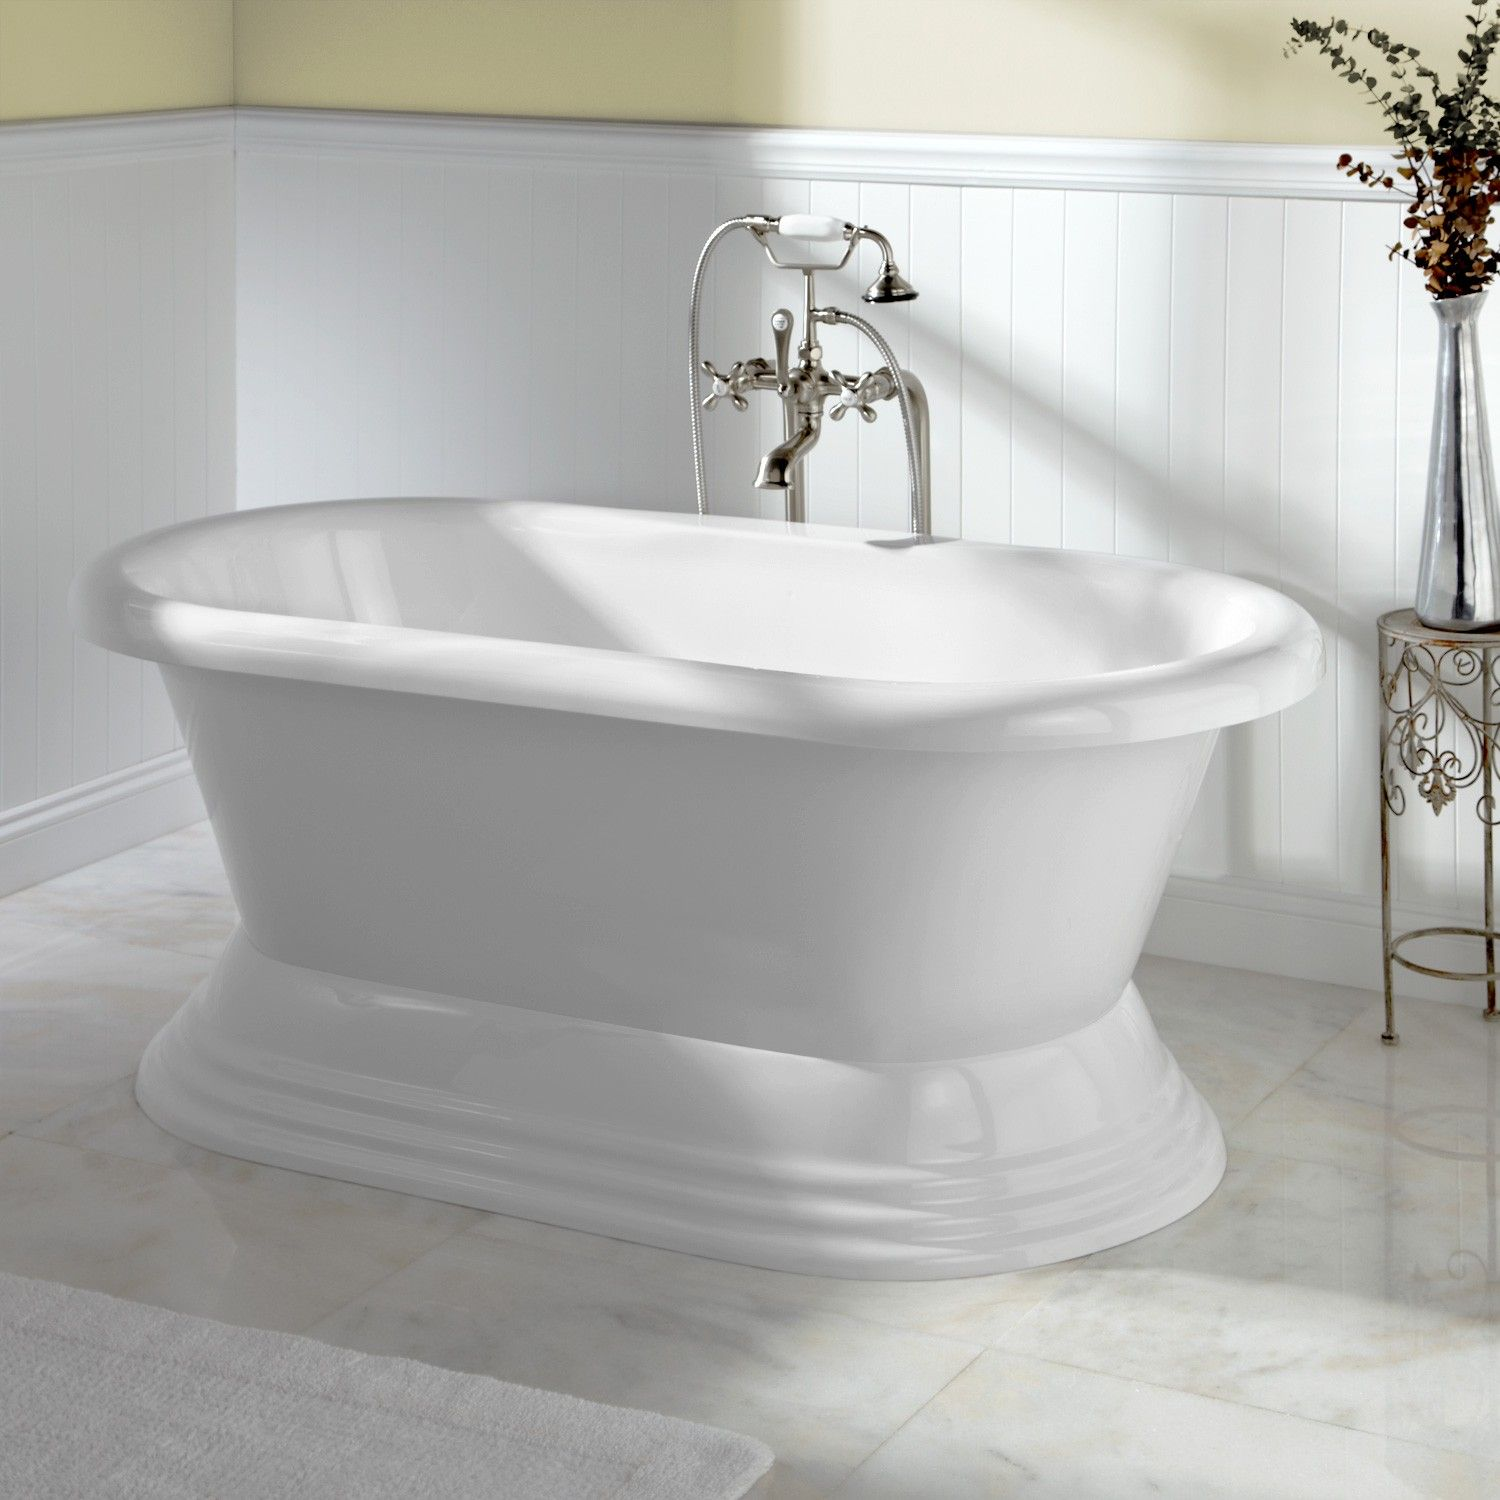 Barkley Acrylic Freestanding Pedestal Tub - Bathtubs - Bathroom ...